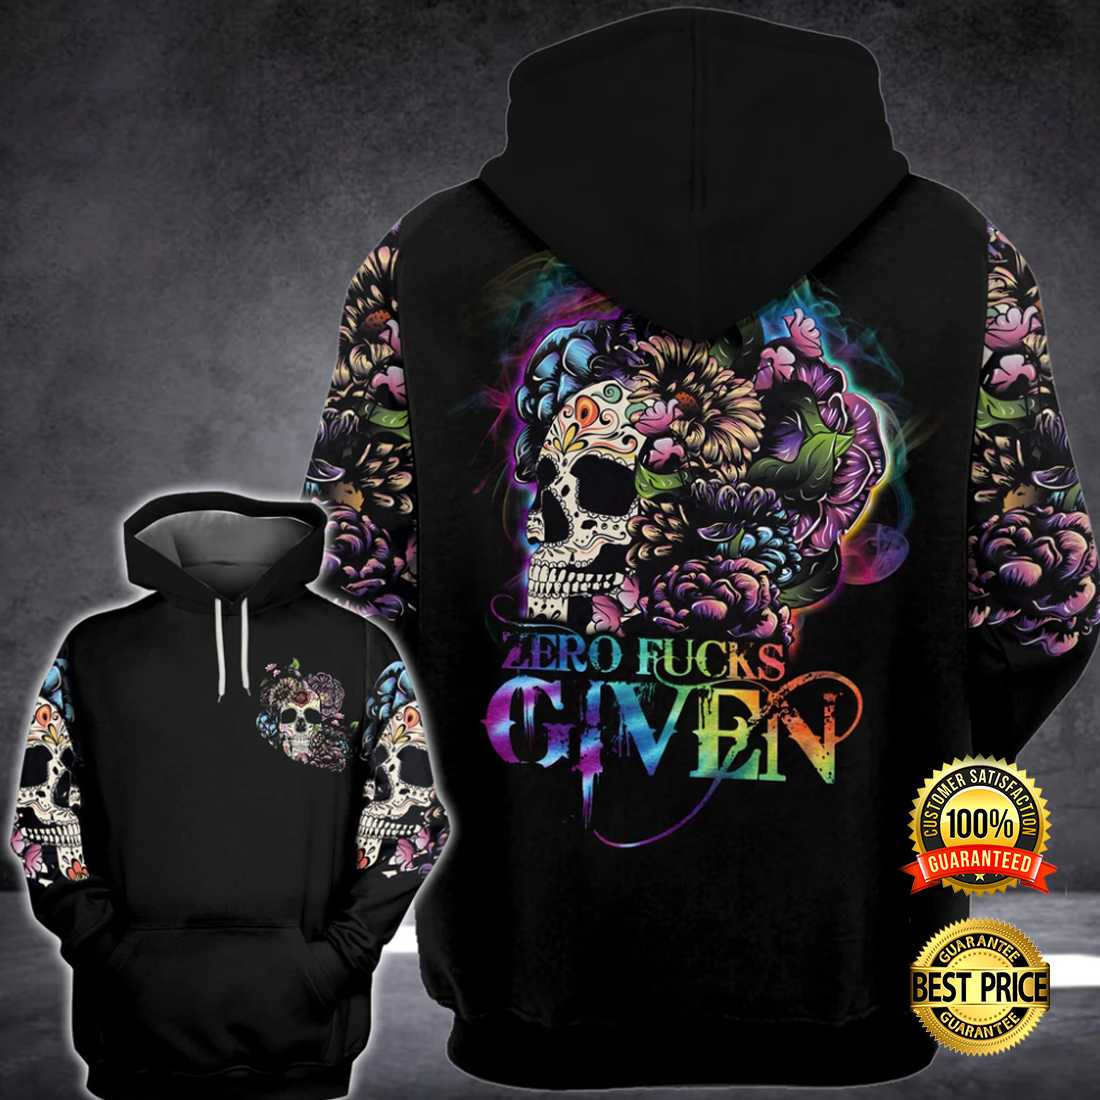 FLORAL SKULL ZERO FUCKS GIVEN ALL OVER PRINTED 3D HOODIE 5